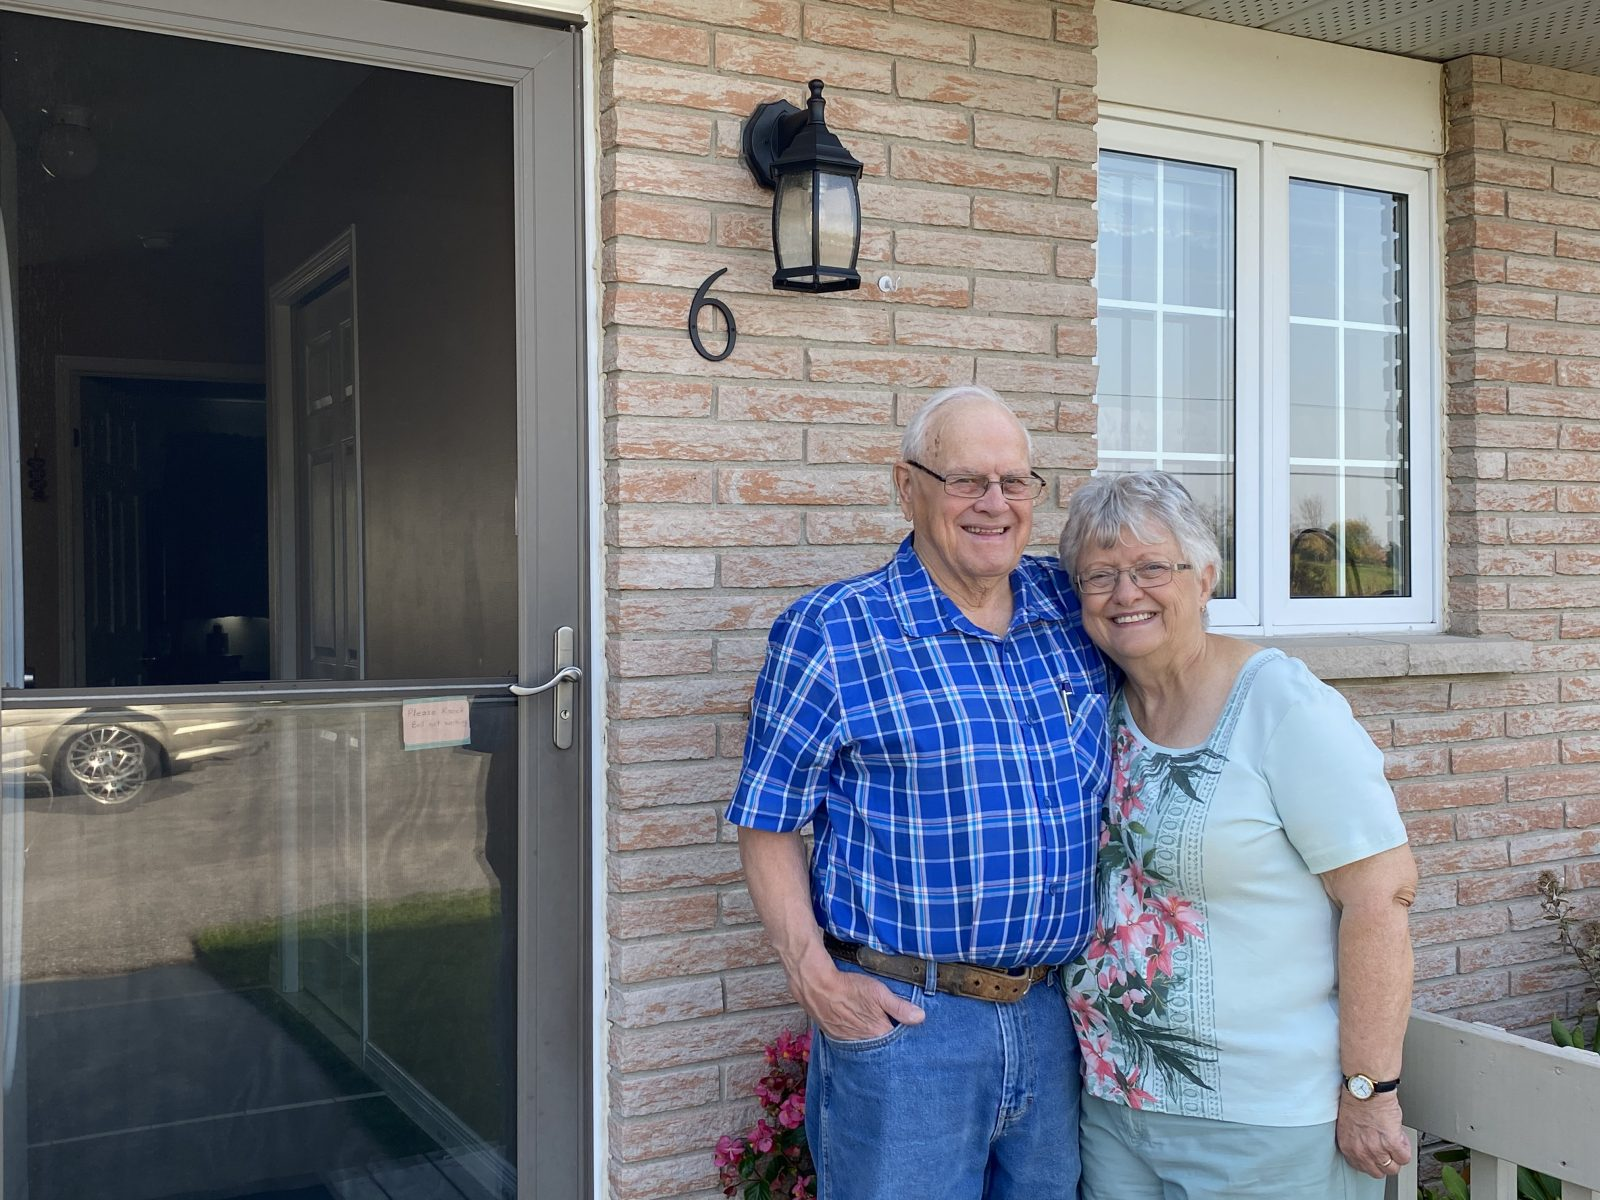 Keeping seniors safe, independent, and at home